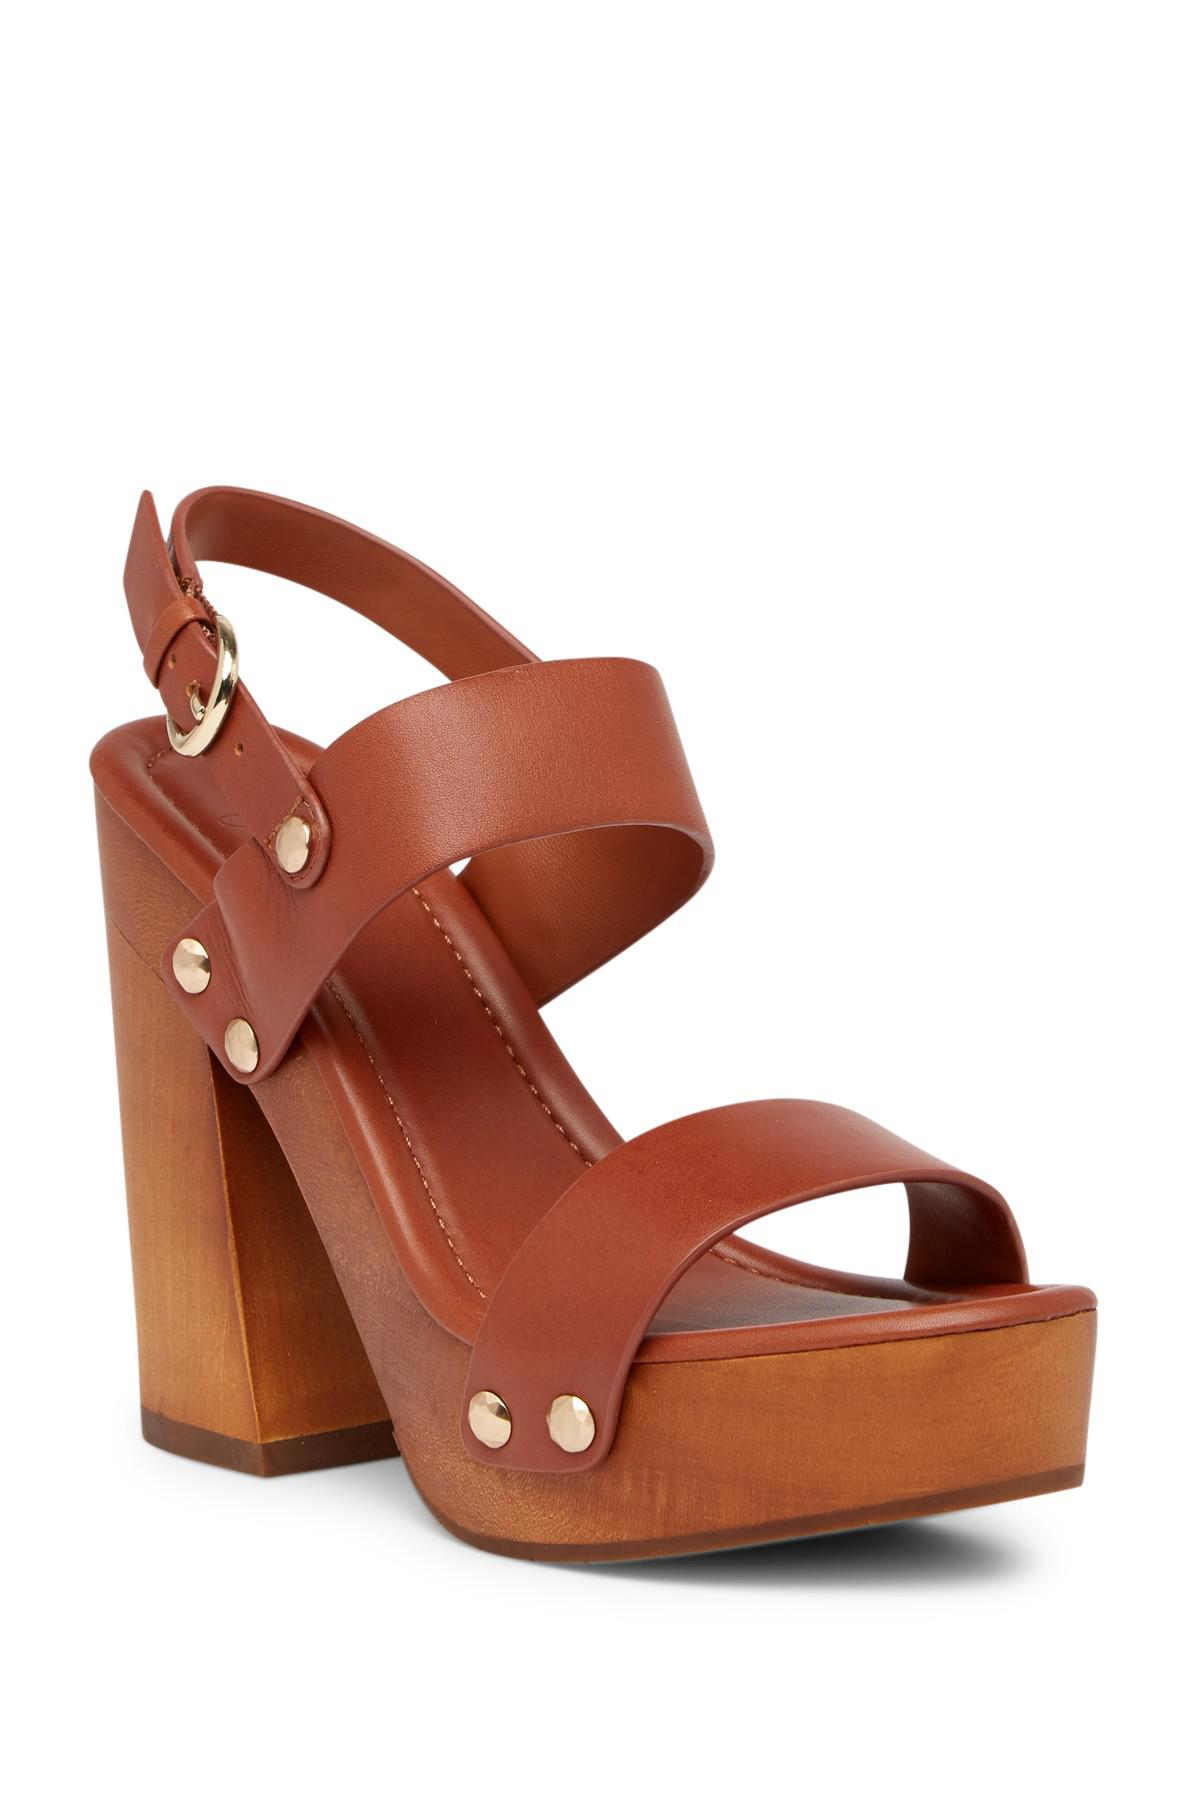 Joie Perforated Leather Sandals low price fee shipping sale online under $60 cheap online clearance popular eQEBr1giF